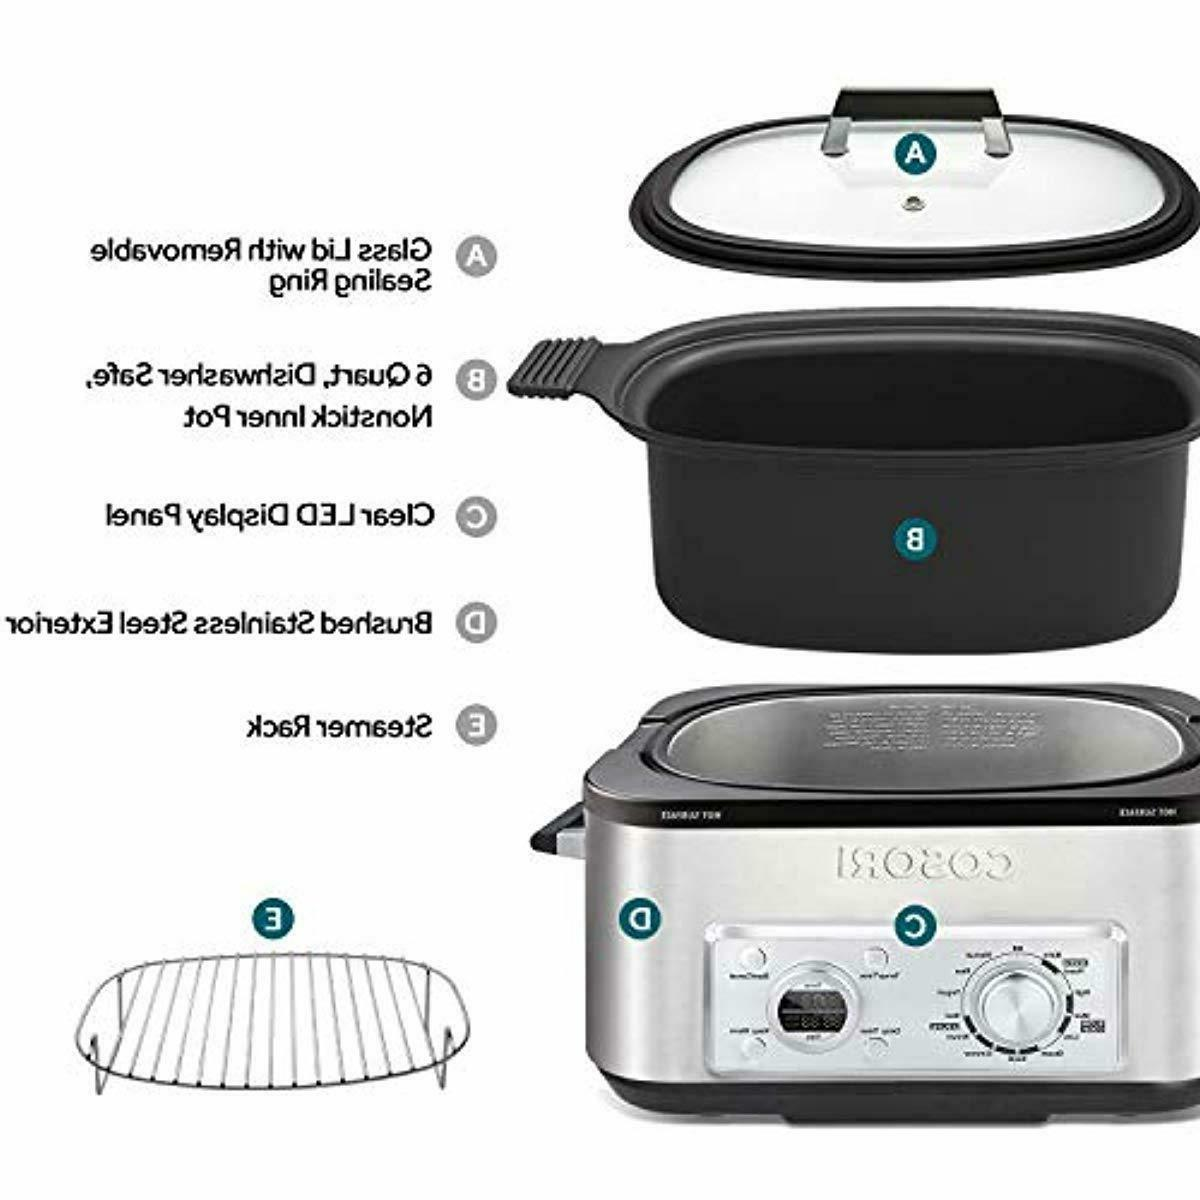 COSORI 6 11-in-1 Programmable Pot, Slow Cooker, Rice Cooker,